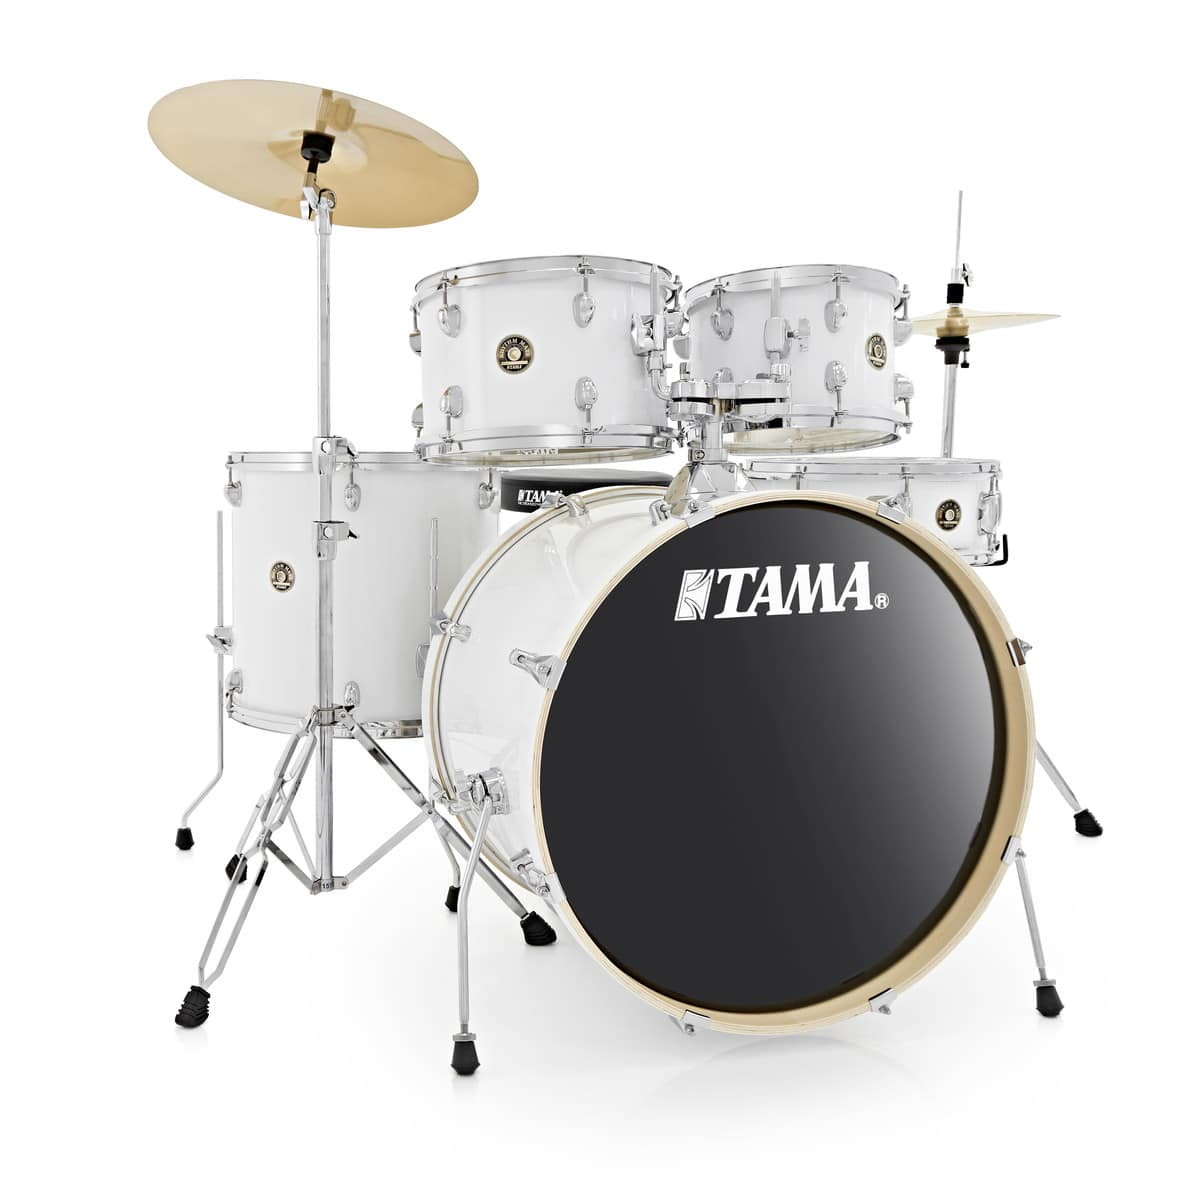 tama rhythm mate 5pc drum kit with zildjian cymbals white drummers only. Black Bedroom Furniture Sets. Home Design Ideas